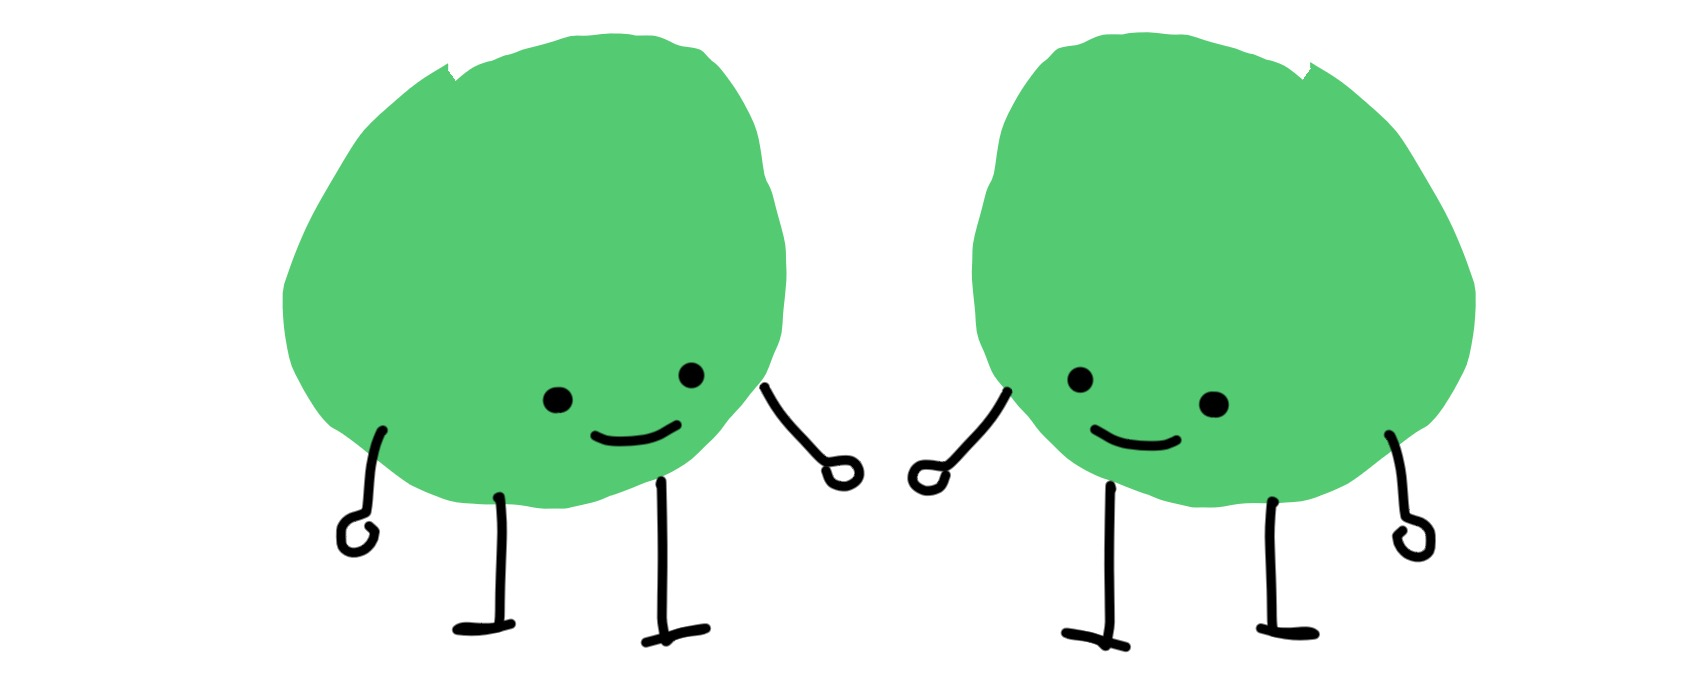 Two dots with arms and legs, looking at each other like a mirror image